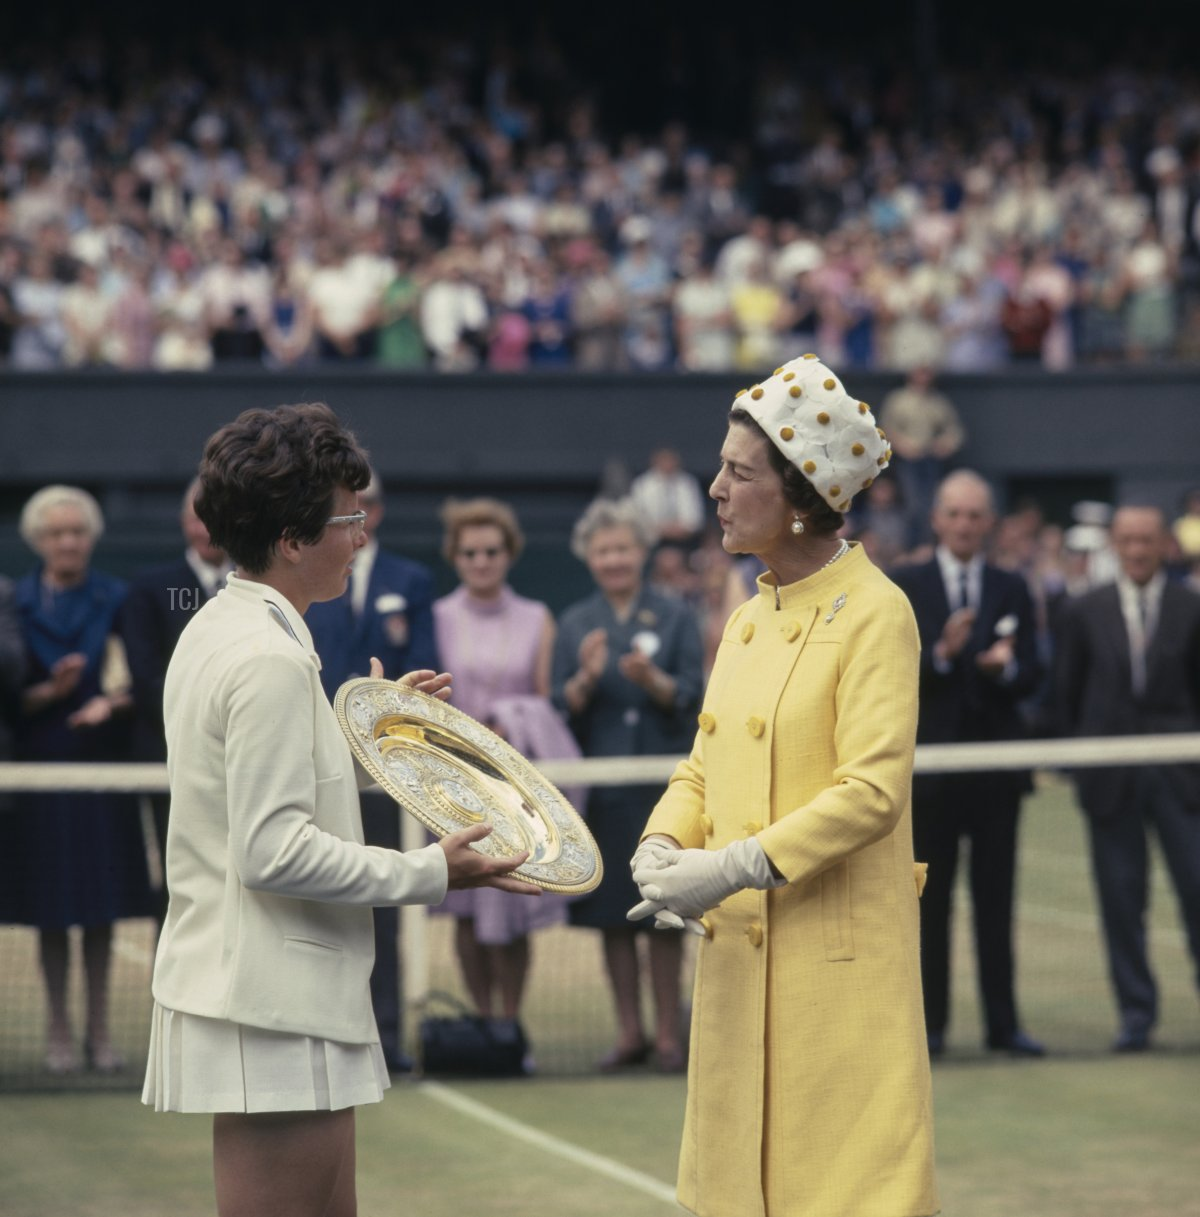 Billie Jean King of the United States is presented with the Venus Rosewater Dish by Princess Marina, Duchess of Kent after defeating Ann Jones at the Women's Singles Final match at the Wimbledon Lawn Tennis Championship on 7th July 1967 at the All England Lawn Tennis and Croquet Club in Wimbledon, London, England